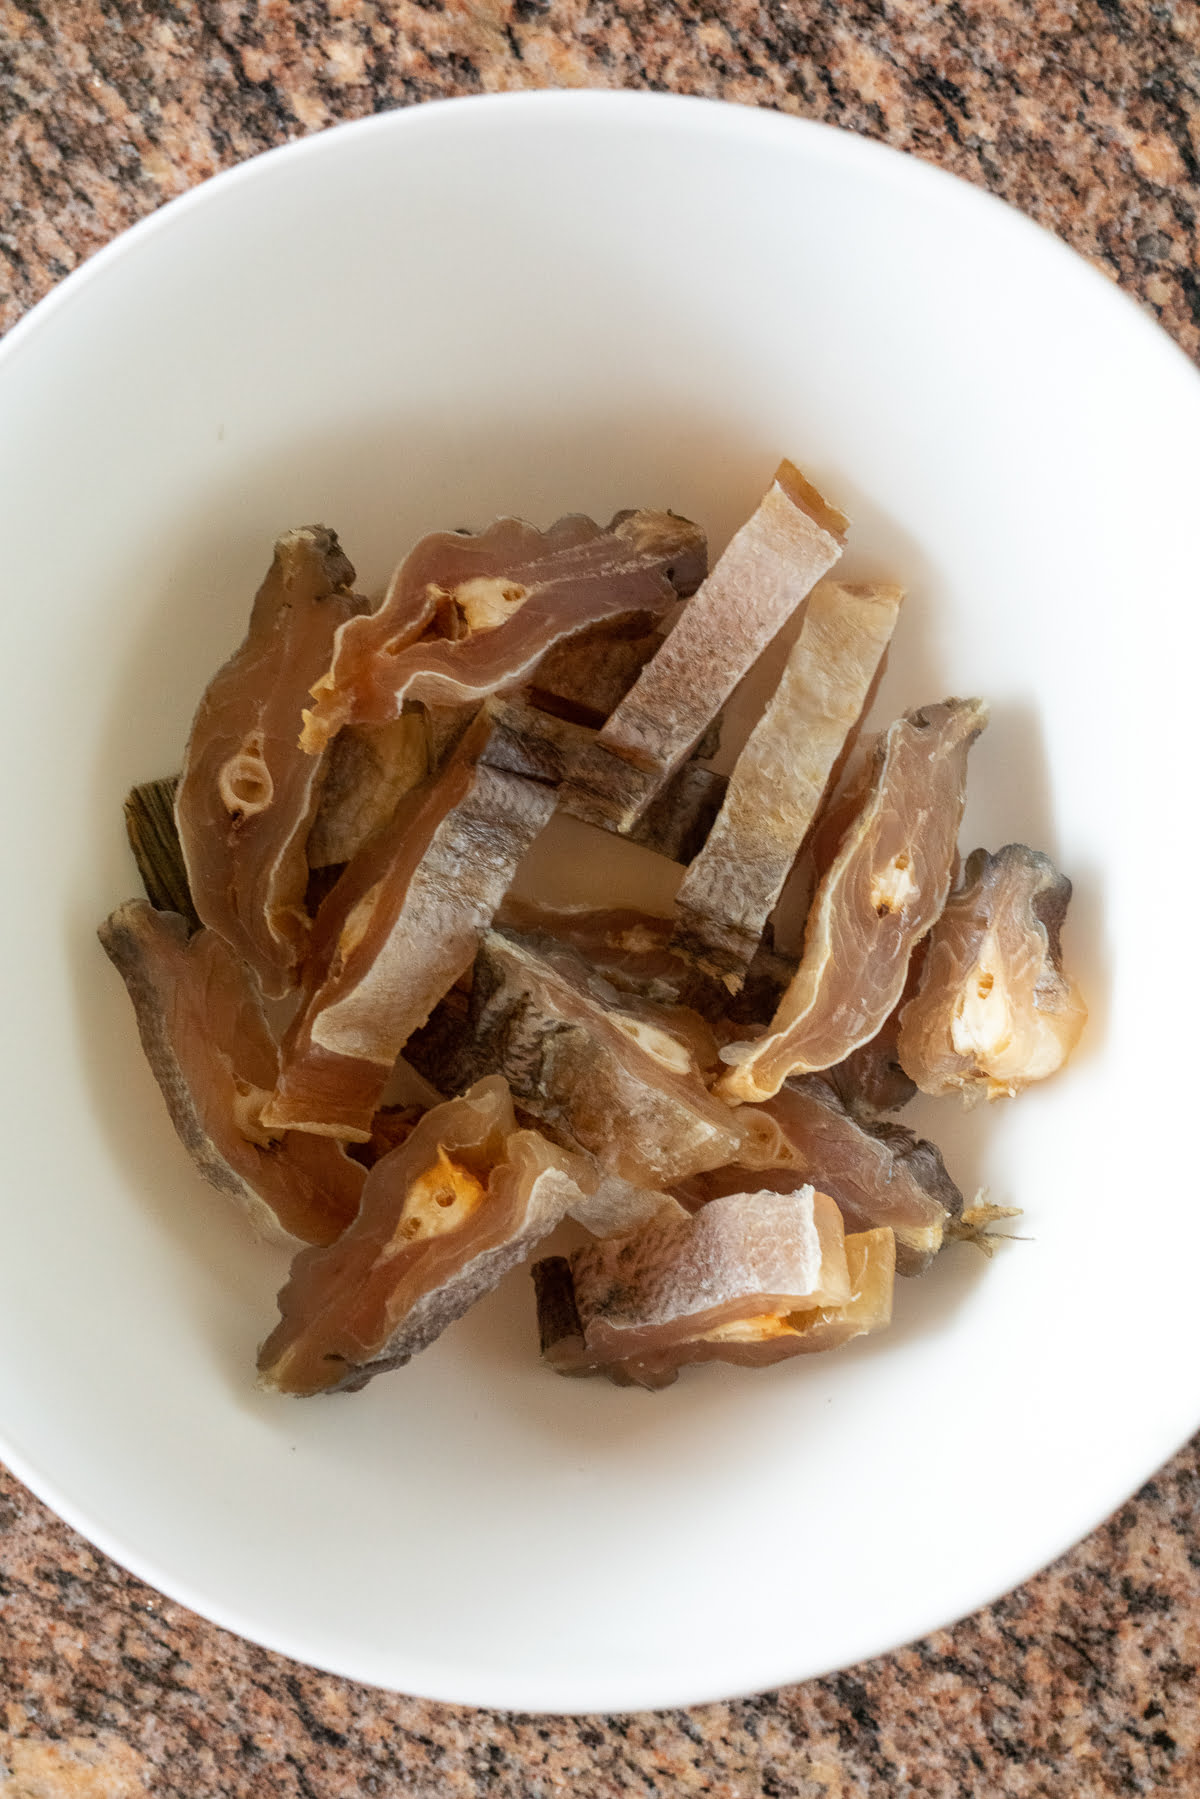 Dried salted fish cut into half-inch slices